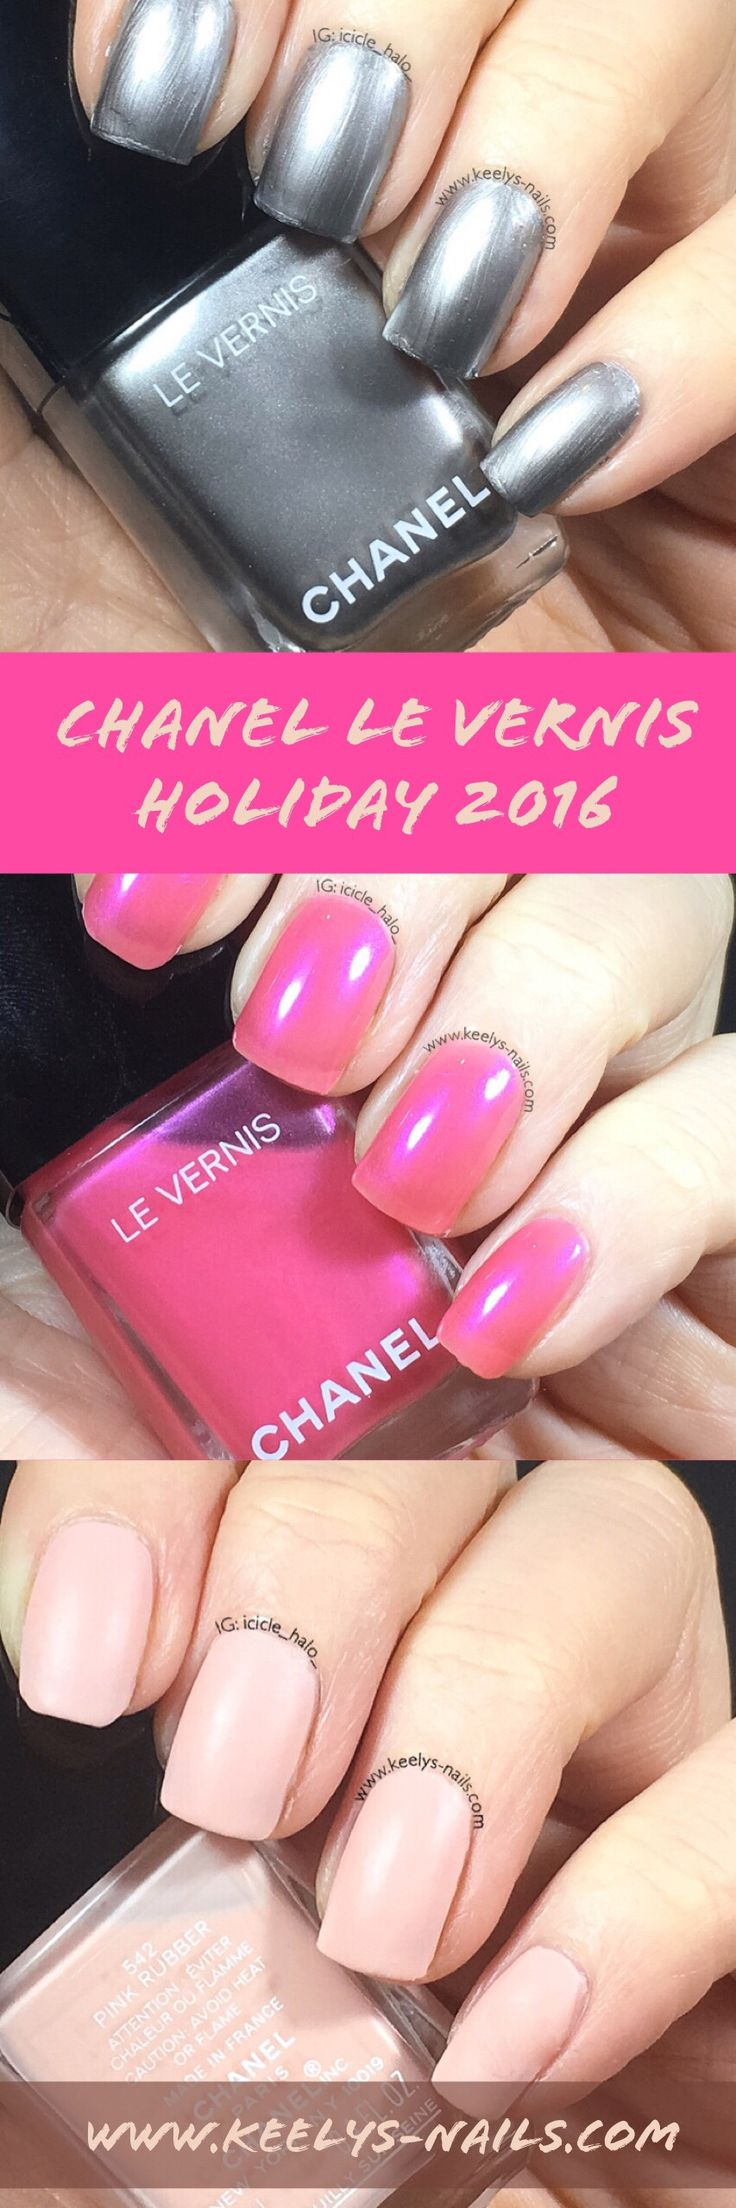 If you are thinking of buying or gifting some Chanel Christmas nail varnish shades this year, check my Chanel Nail Polish Holiday 2016 Swatches first!